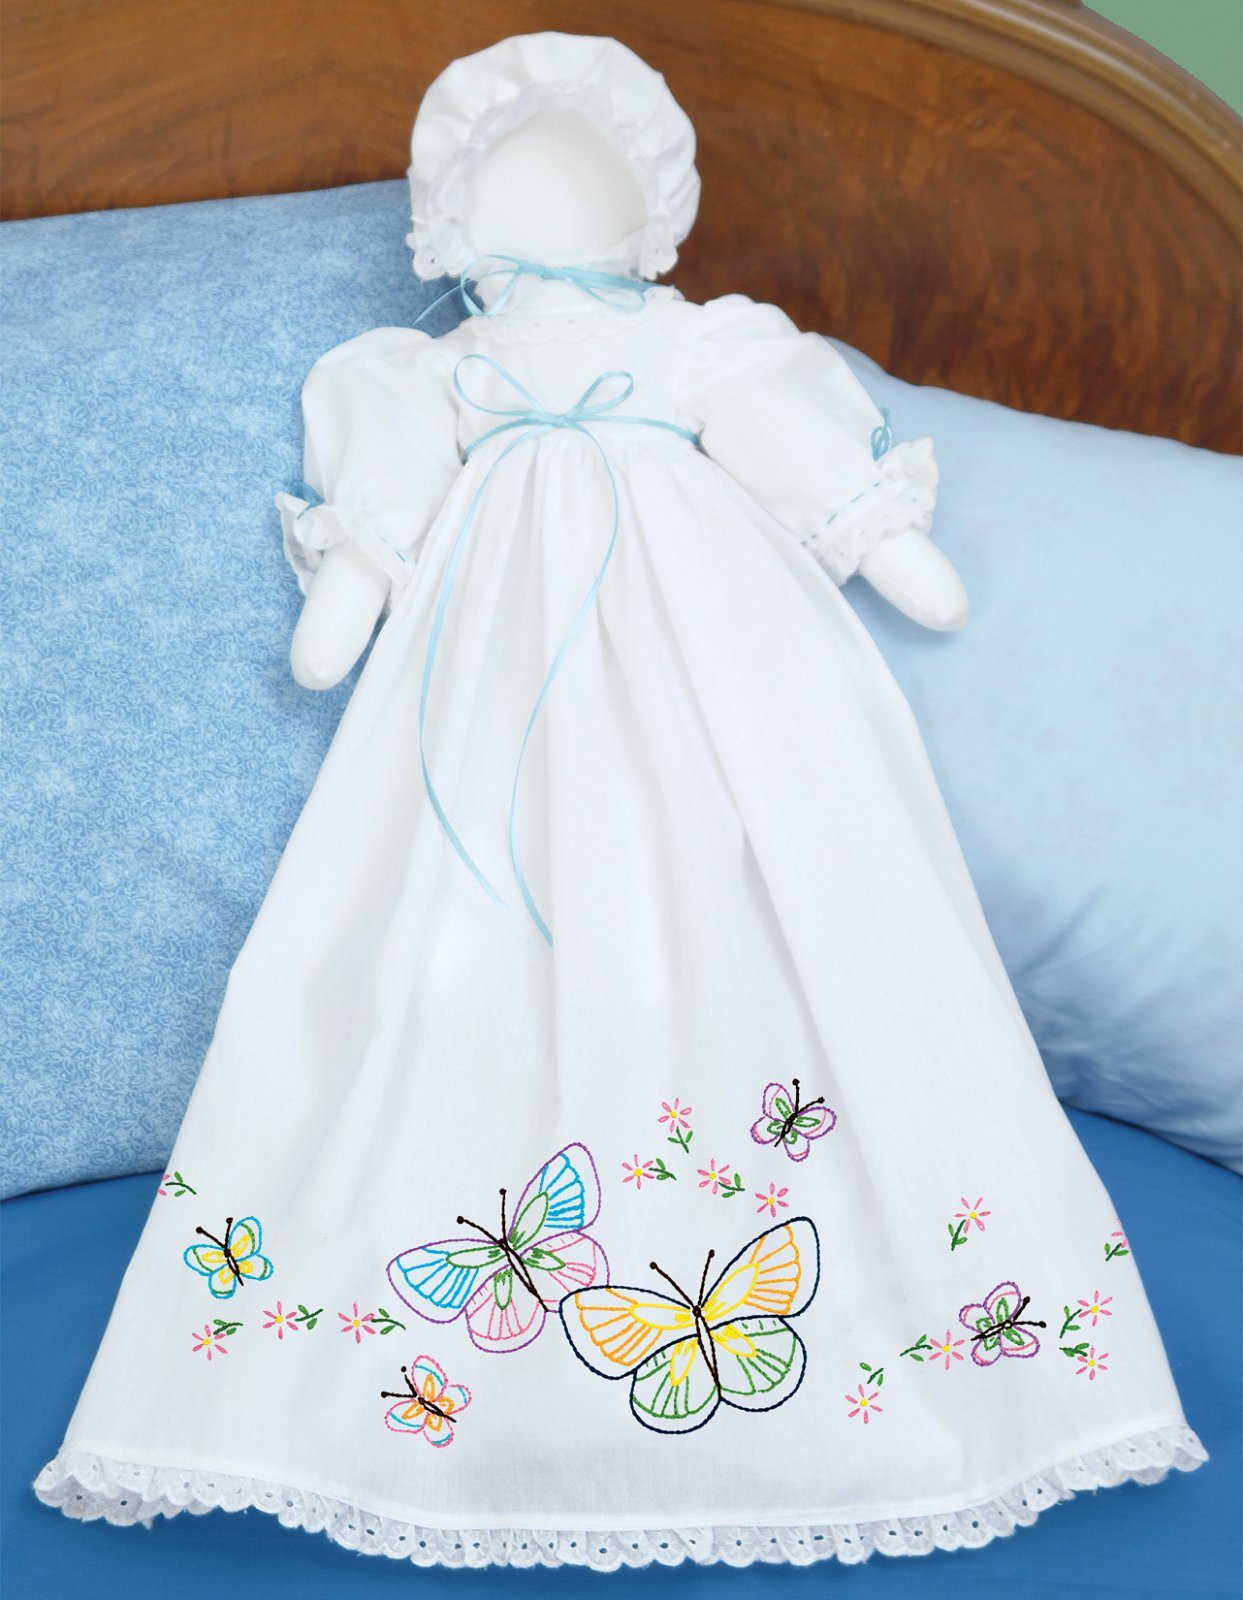 1900-PILLOWCASE DOLL KIT (Dress Bonnet  Doll pieces)--0143